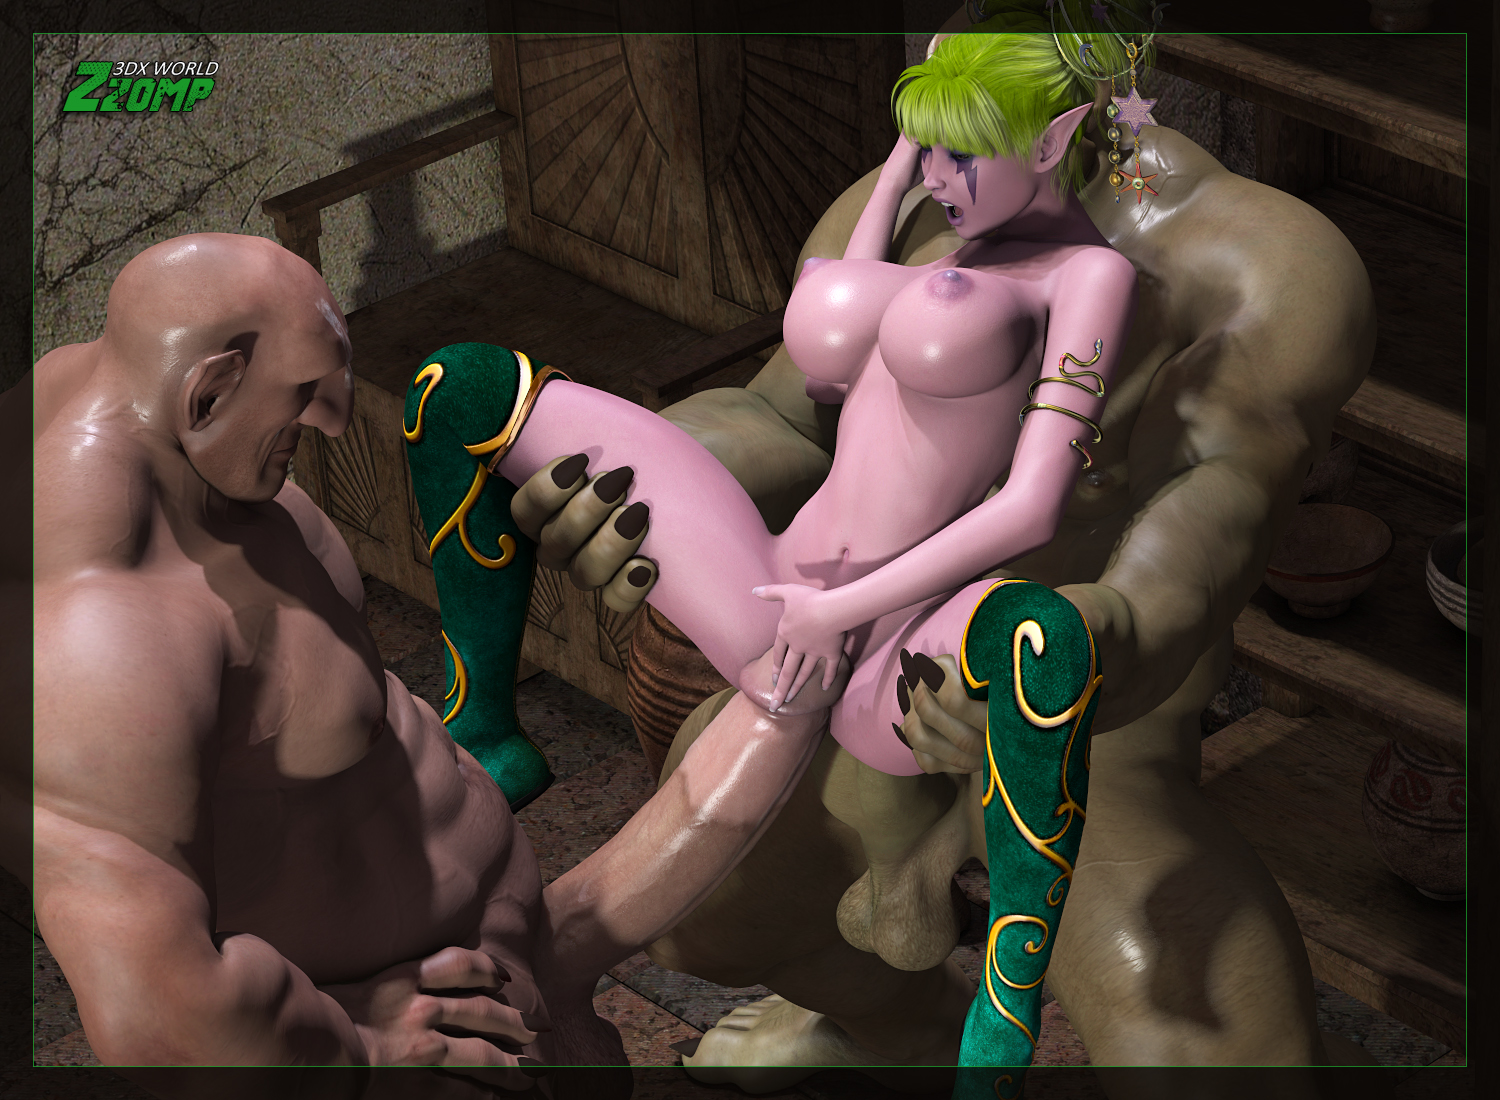 Hot hentai gay porn ogre erotic photo